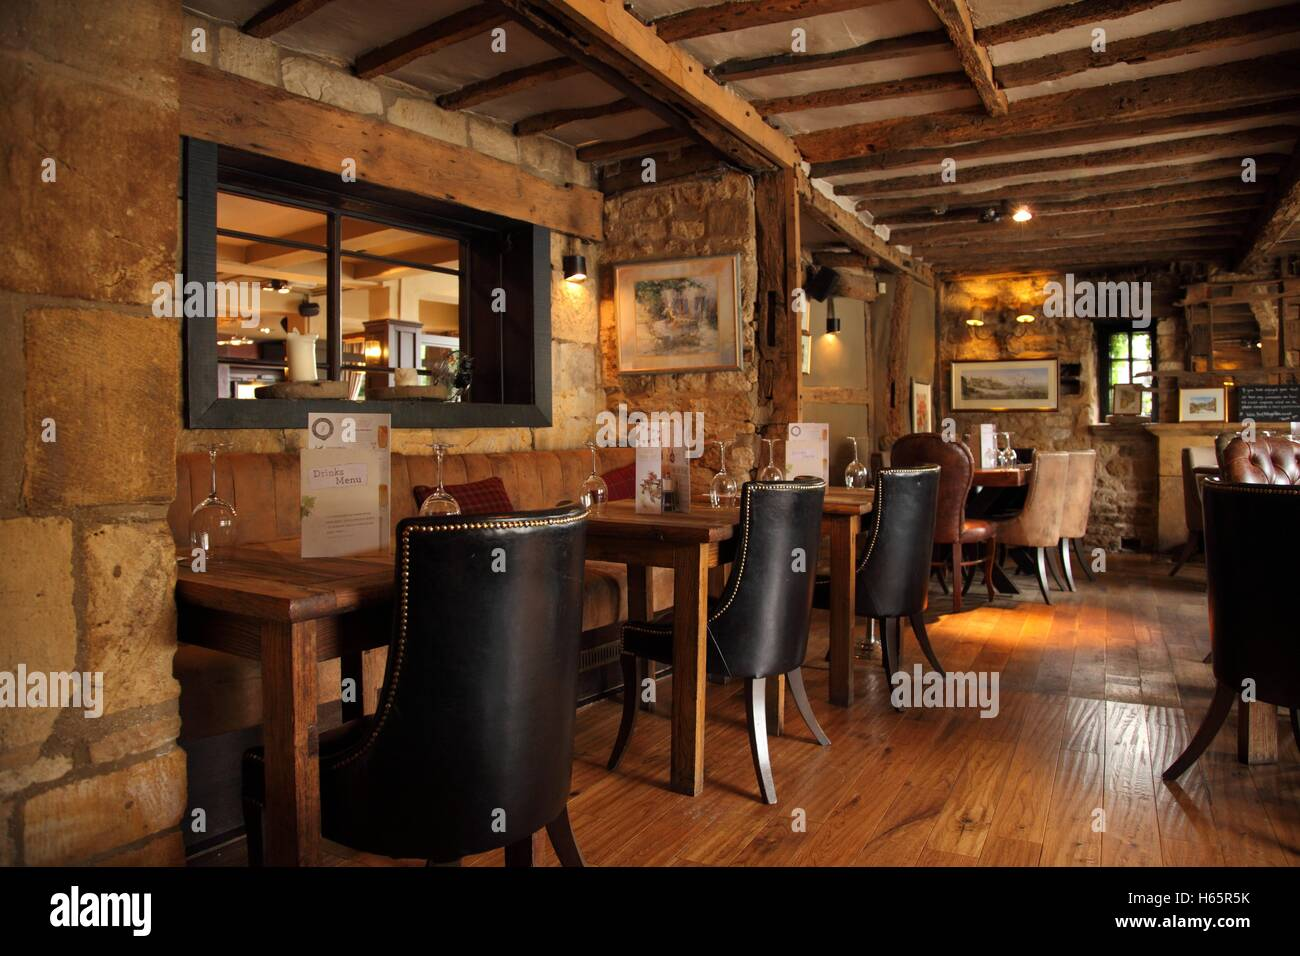 interior of a country pub with wooden floor beams olde worlde stock photo 124288463 alamy. Black Bedroom Furniture Sets. Home Design Ideas